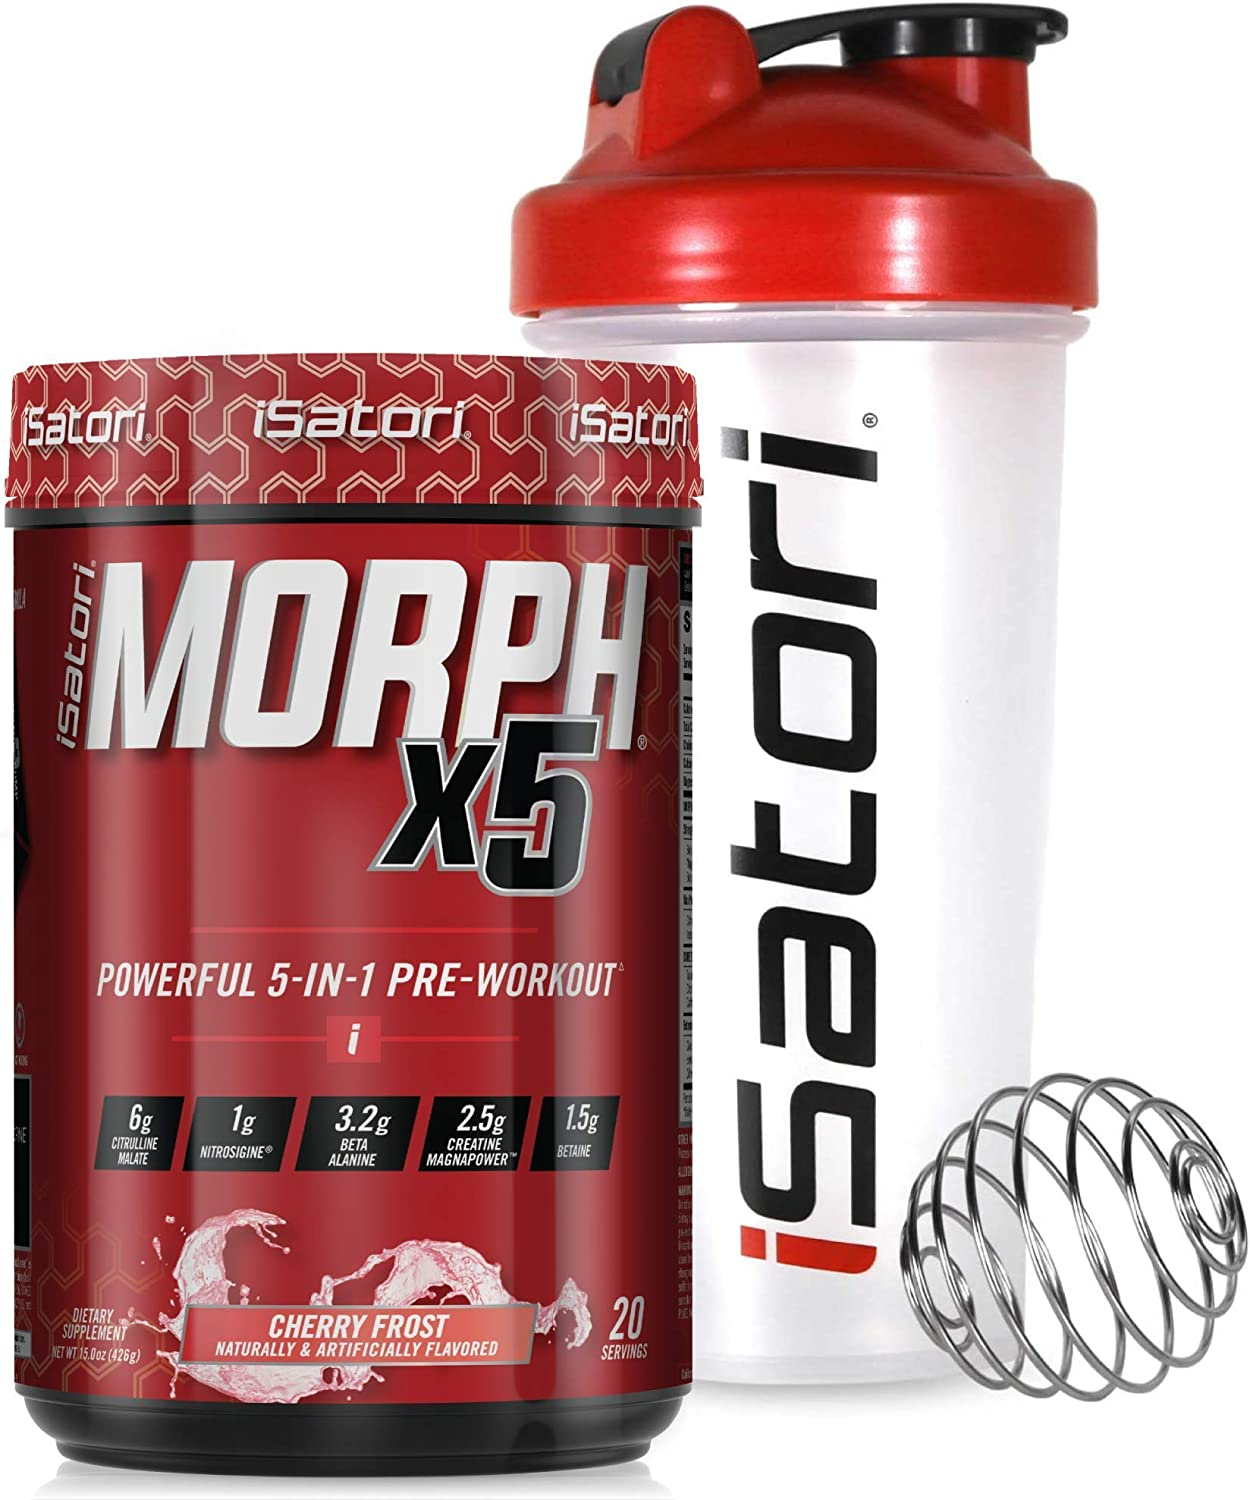 iSatori Morph Xtreme Intense Pre Workout - Bombsicle (20 Servings) & iSatori Classic Blender Bottle (Clear Bottle with Red Top)